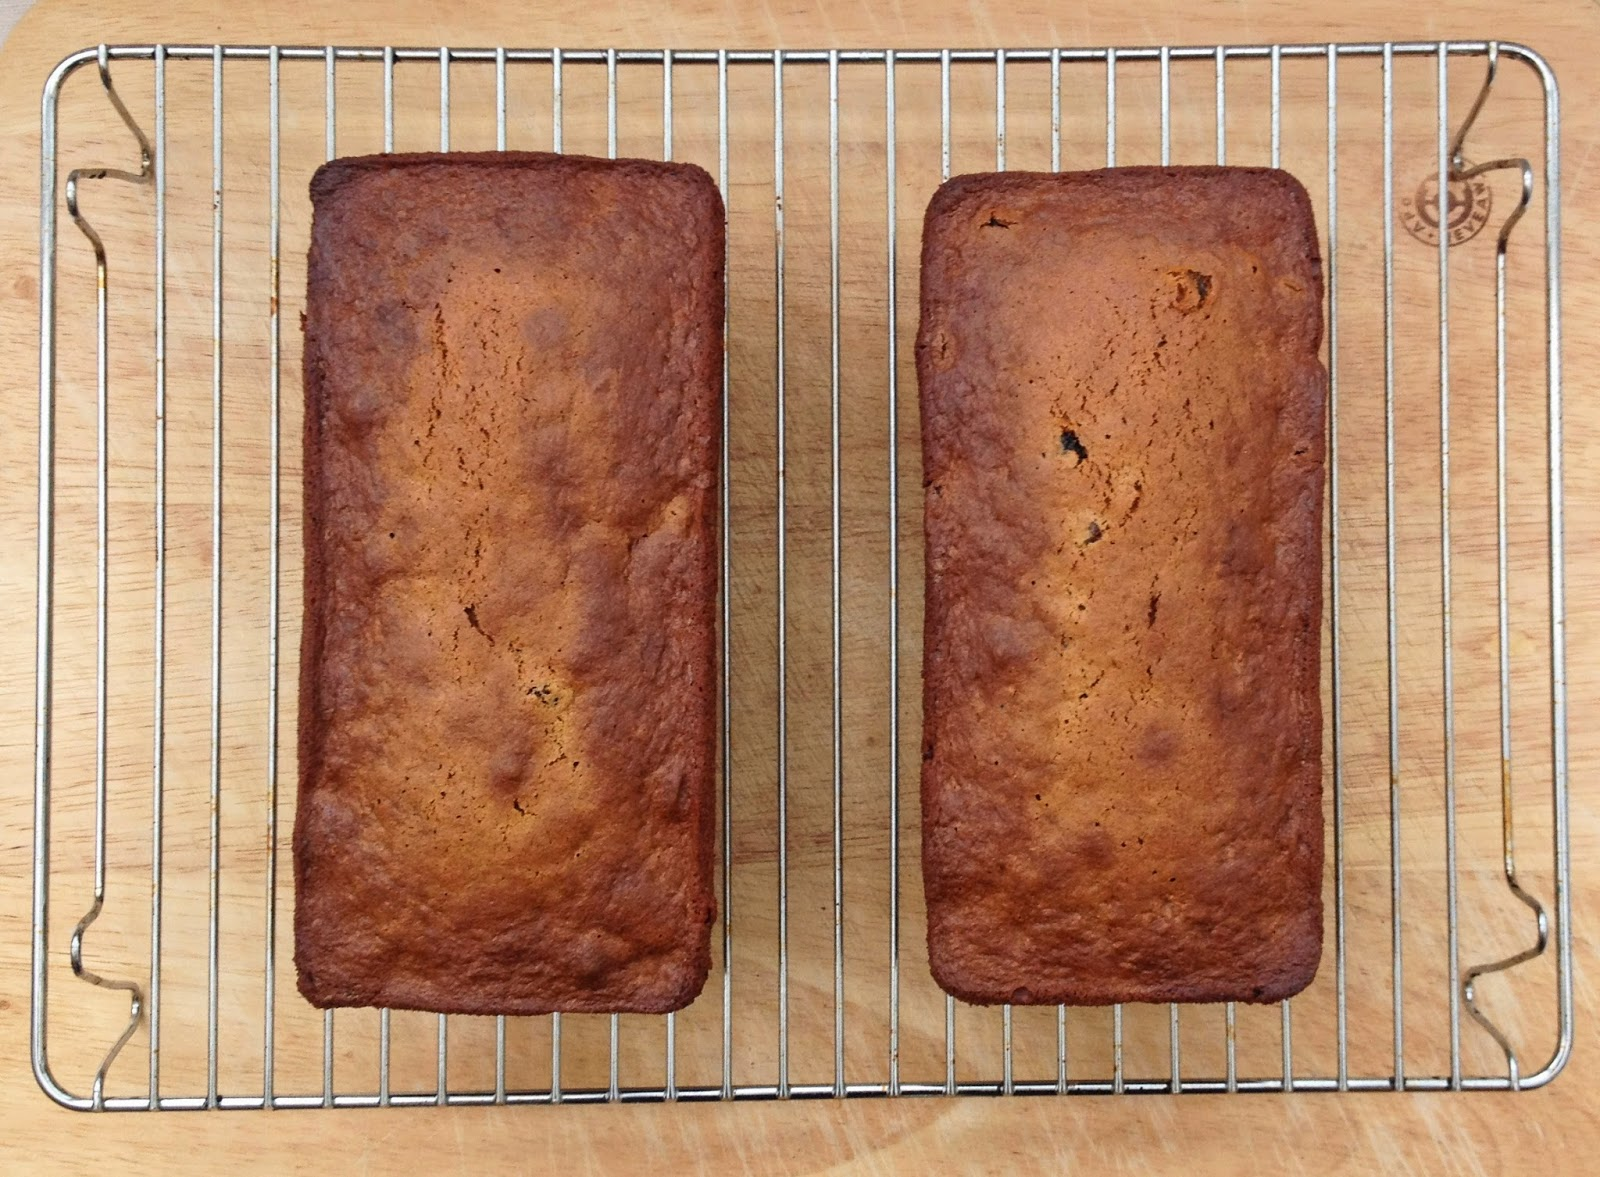 two malt loaves - eat one and keep one